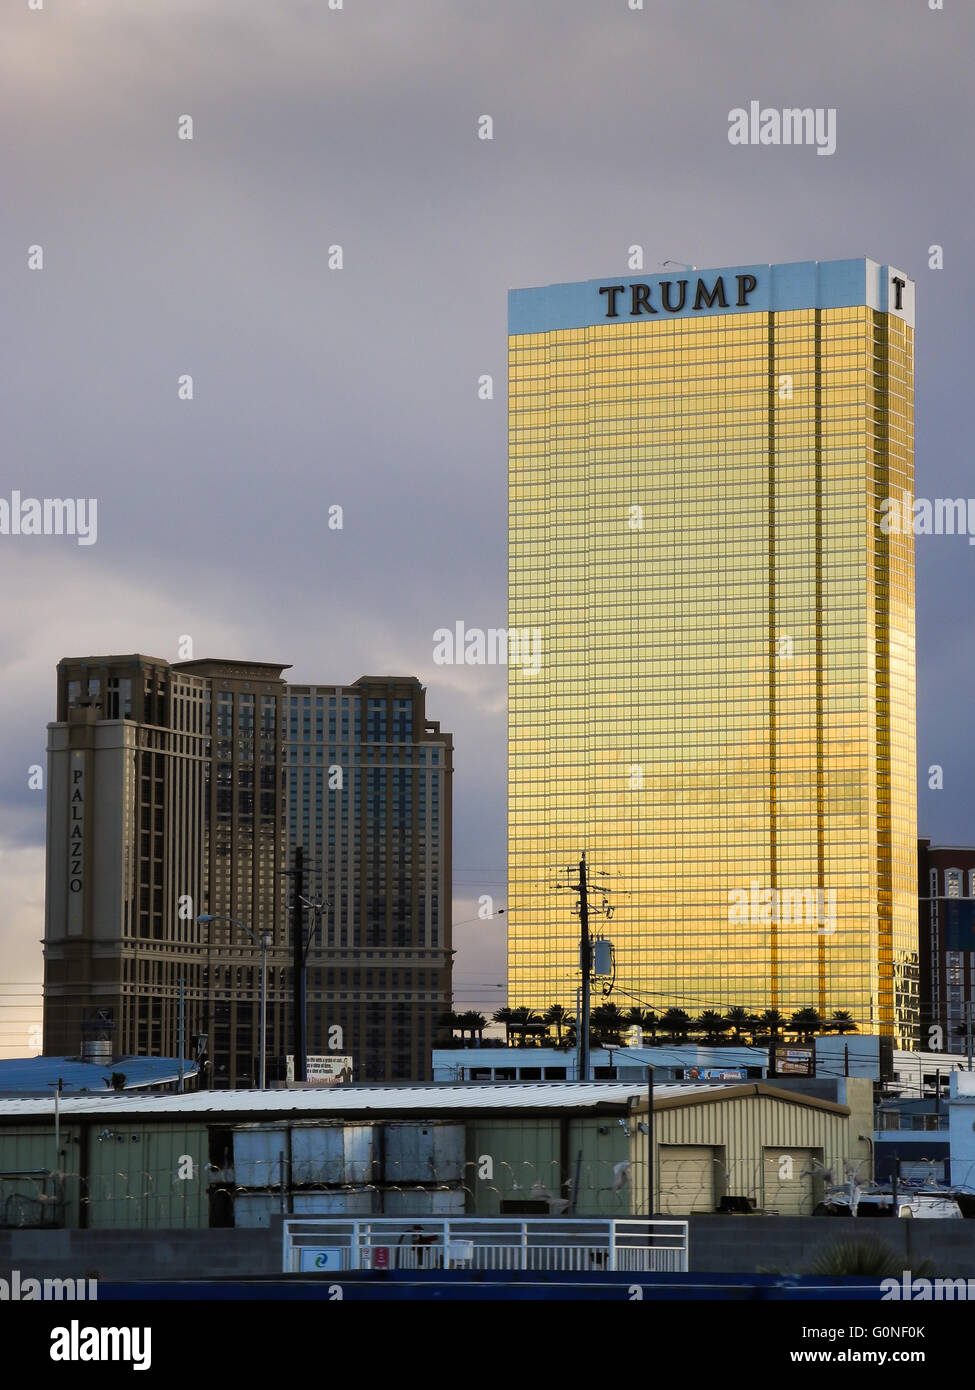 The Trump Tower in Las Vegas, Nevada. The Trump Tower is a prominent, golden landmark owned by famous businessman Stock Photo